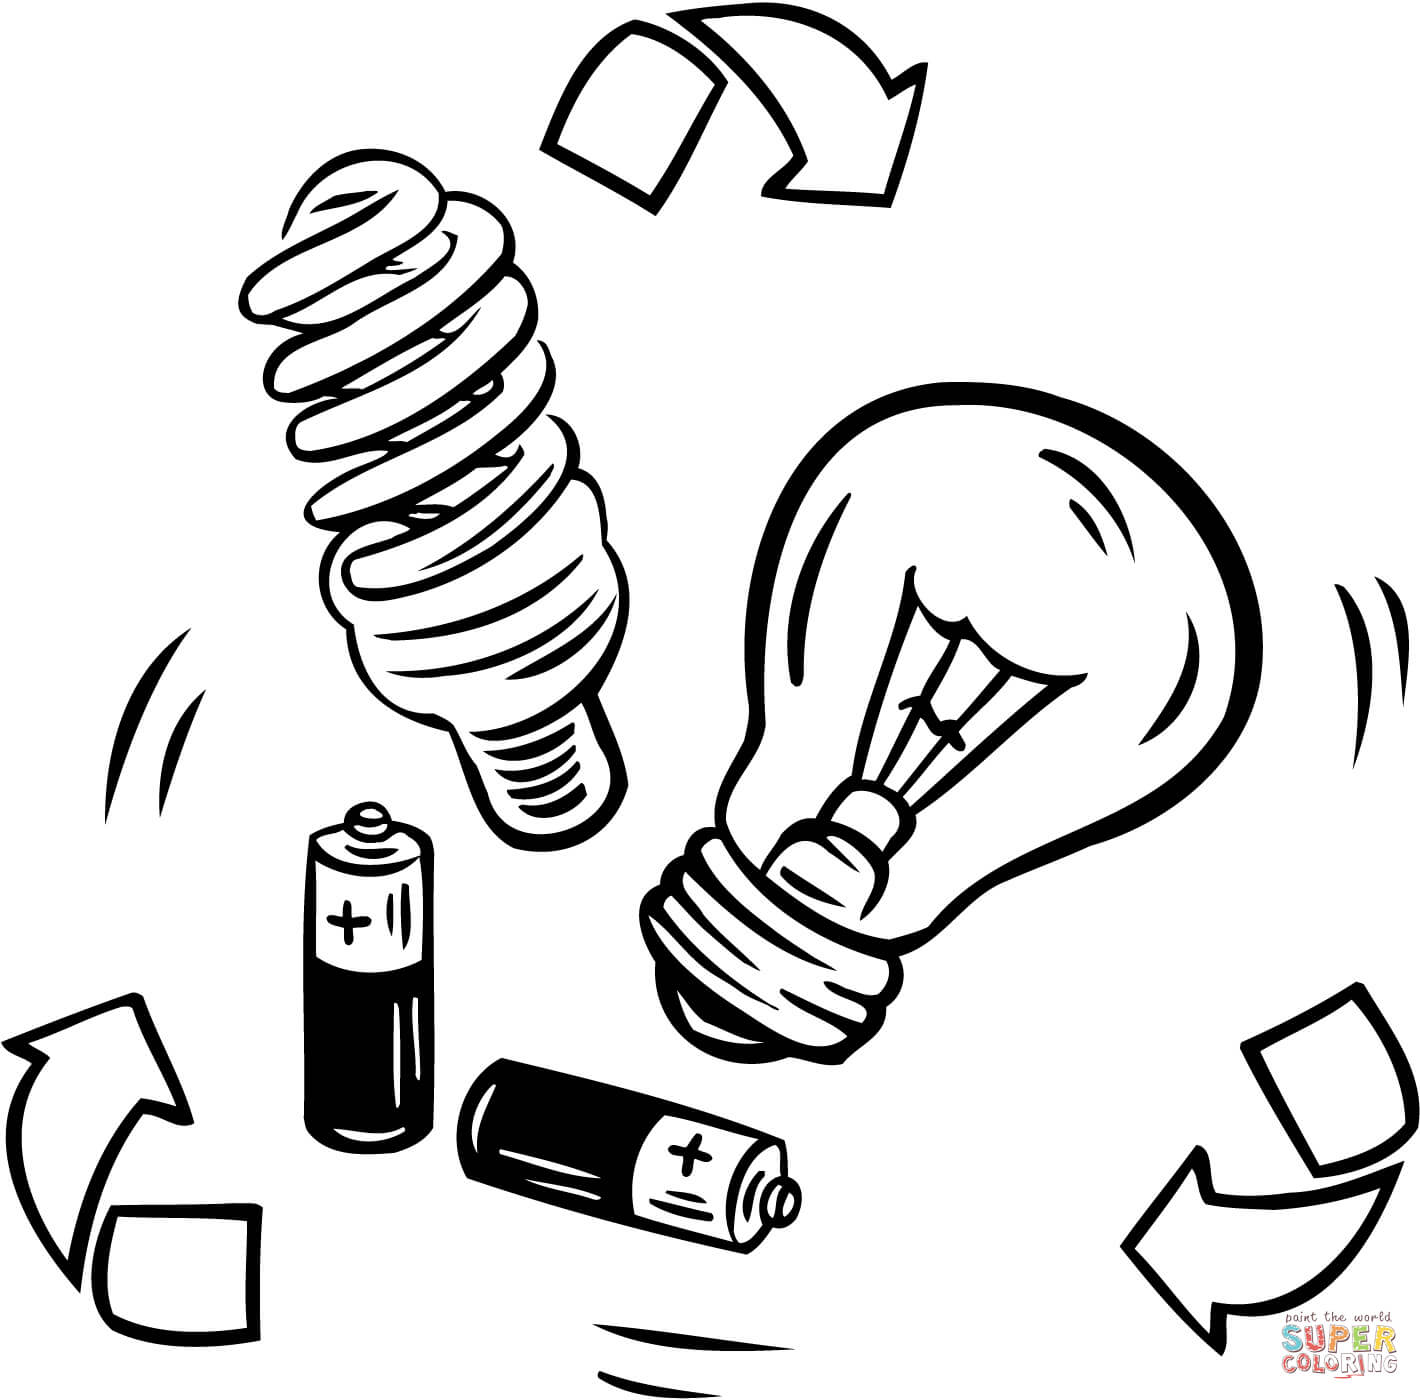 1420x1400 Physics Coloring Pages Free Coloring Pages